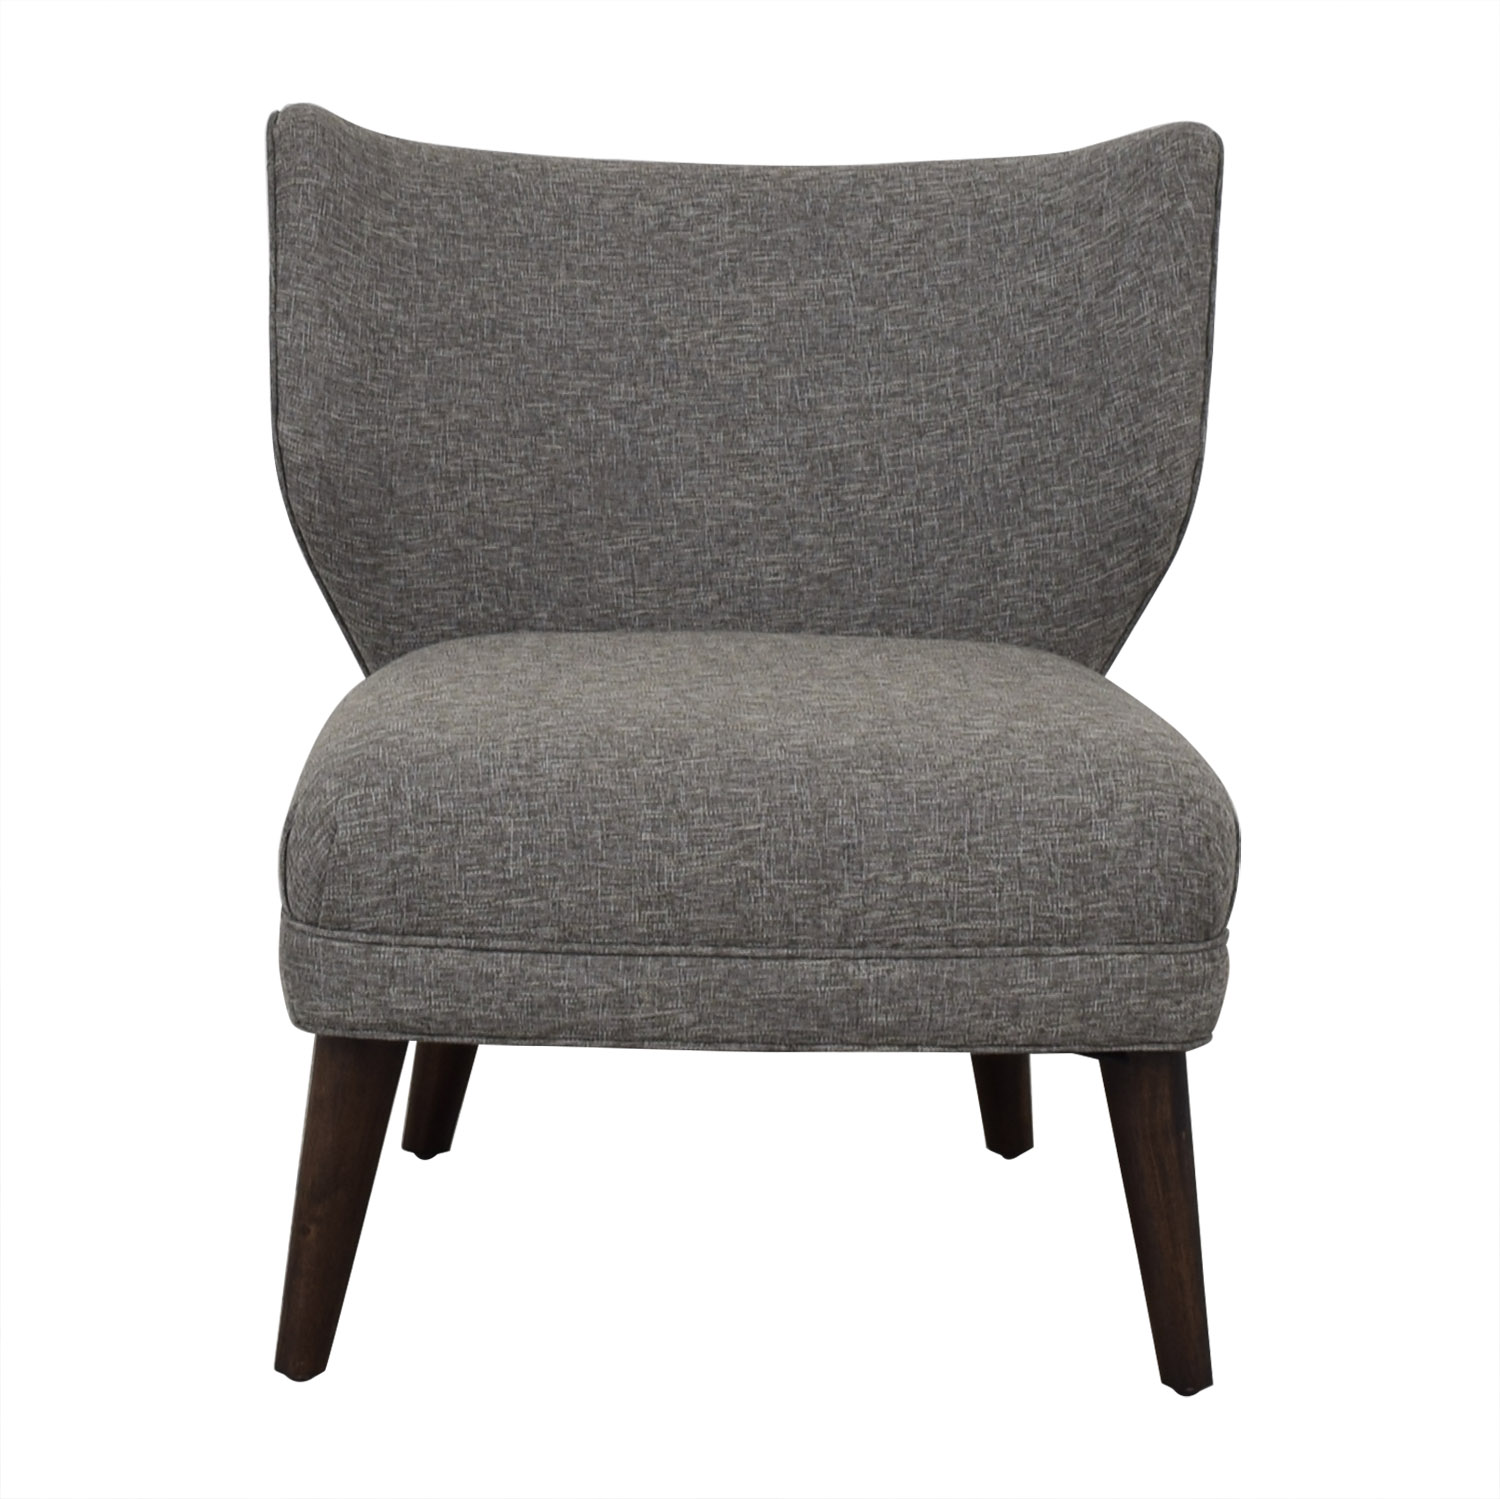 West Elm West Elm Retro Wing Chair used